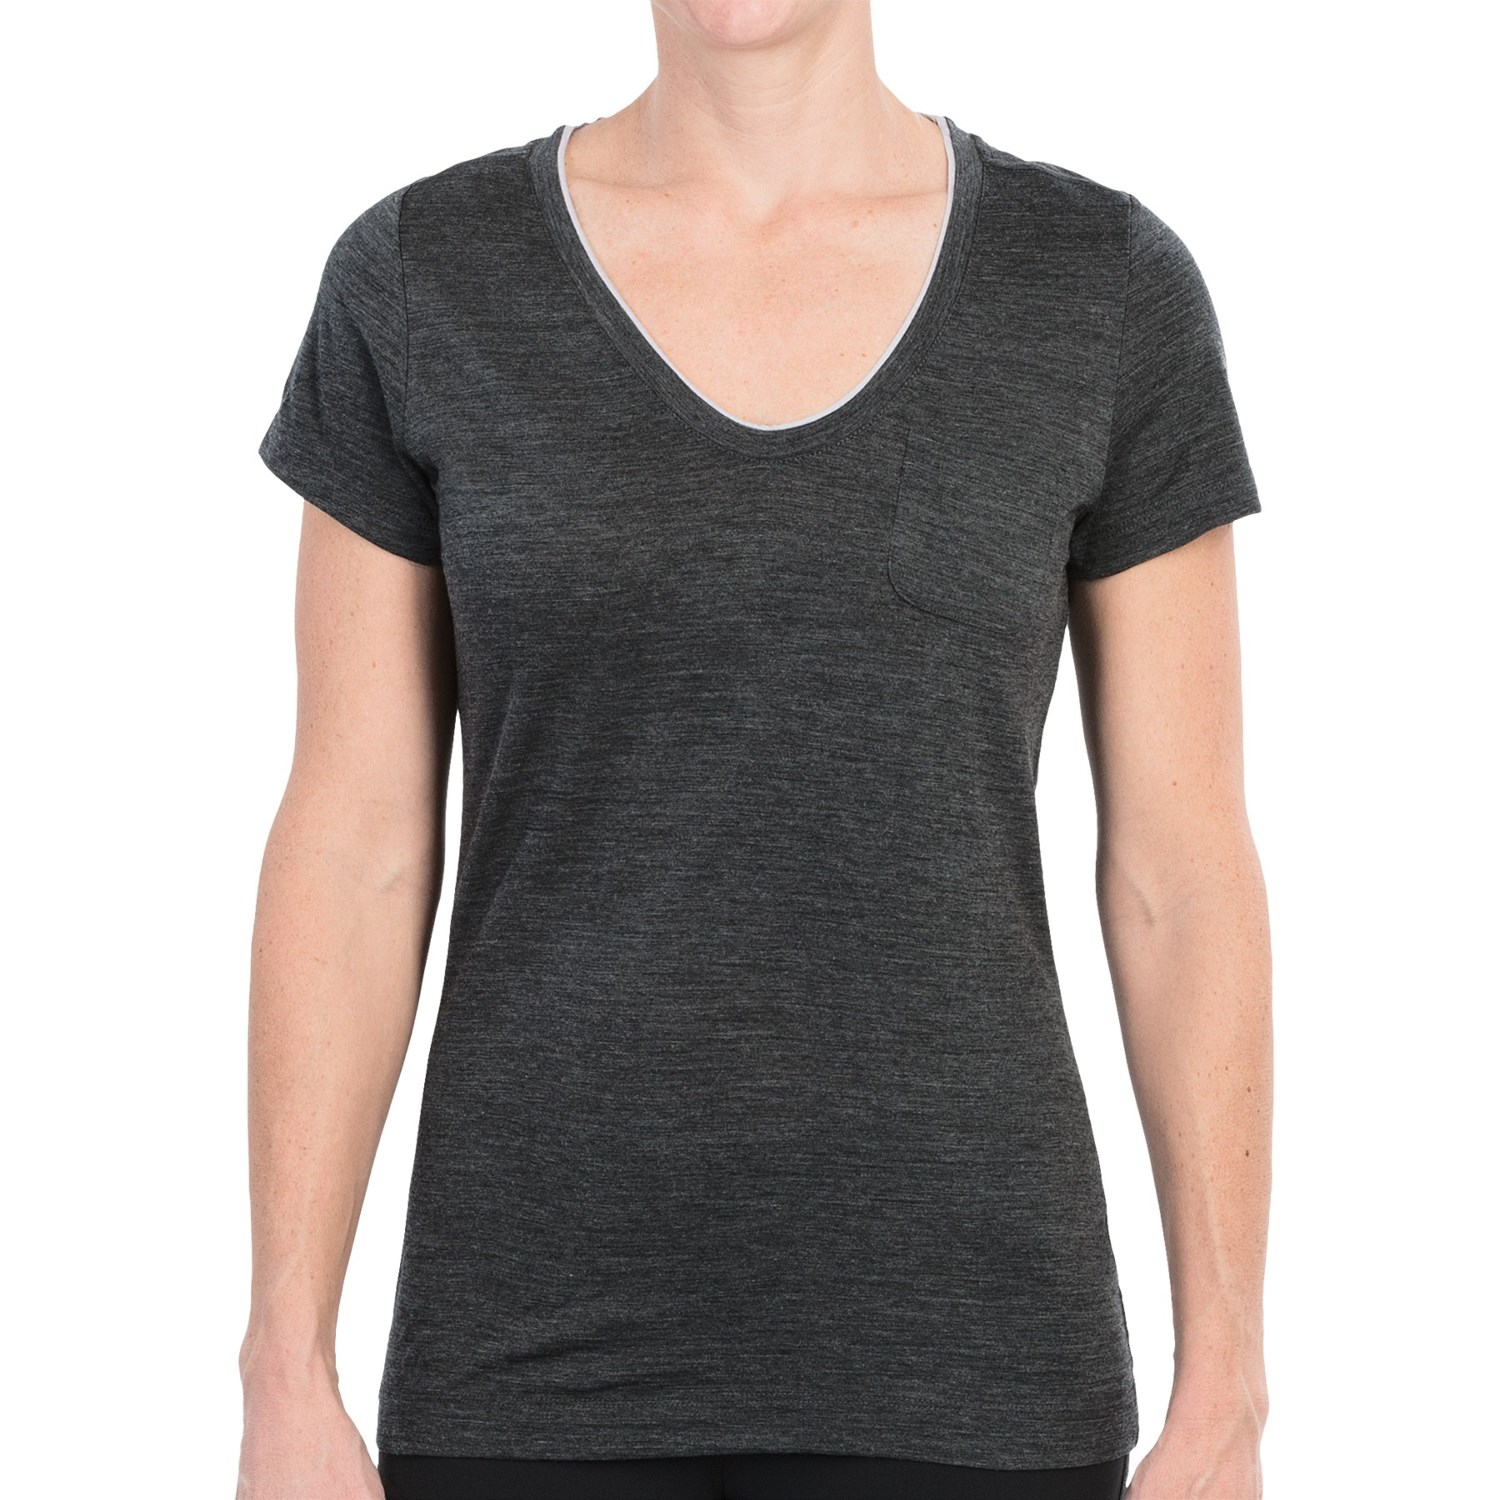 Icebreaker harmony t shirt merino wool upf 30 short for Merino wool shirts for travel